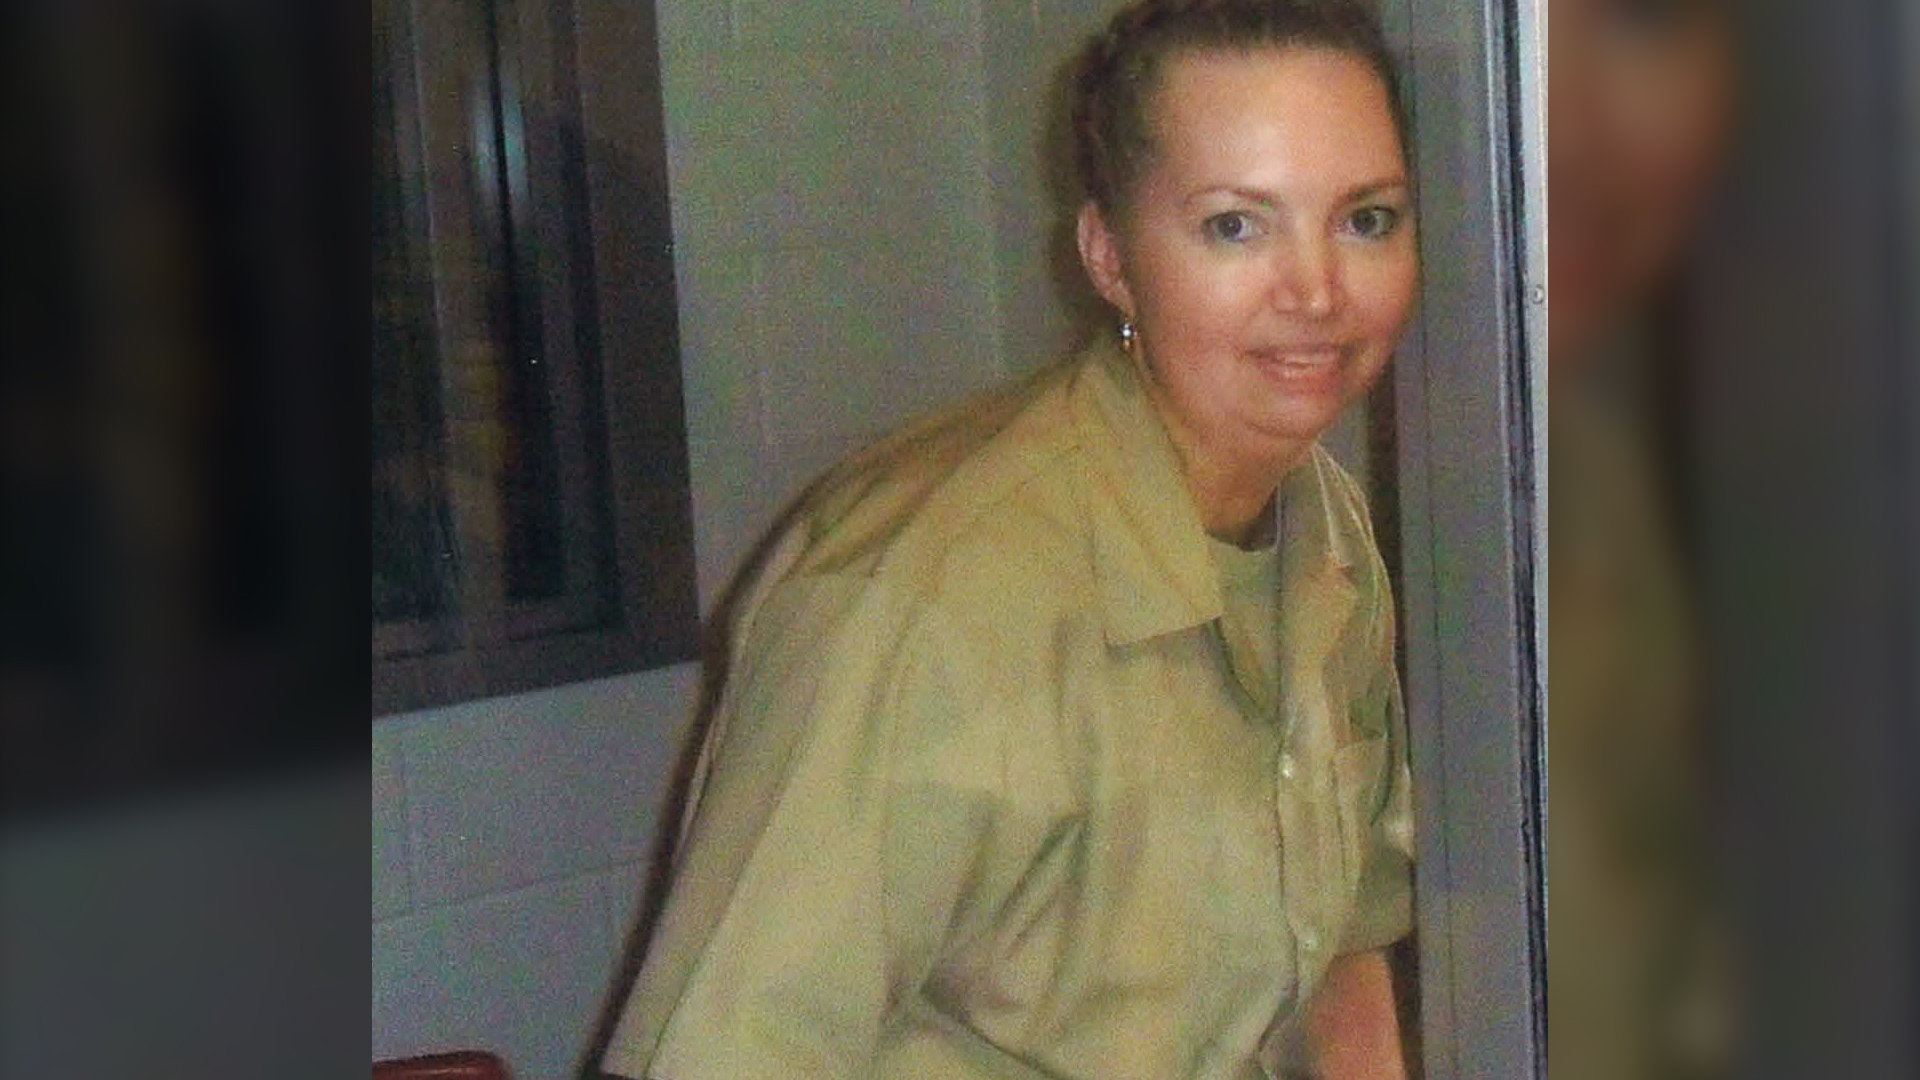 Court Okays Execution Date For Lisa Montgomery, To Become First Female ...